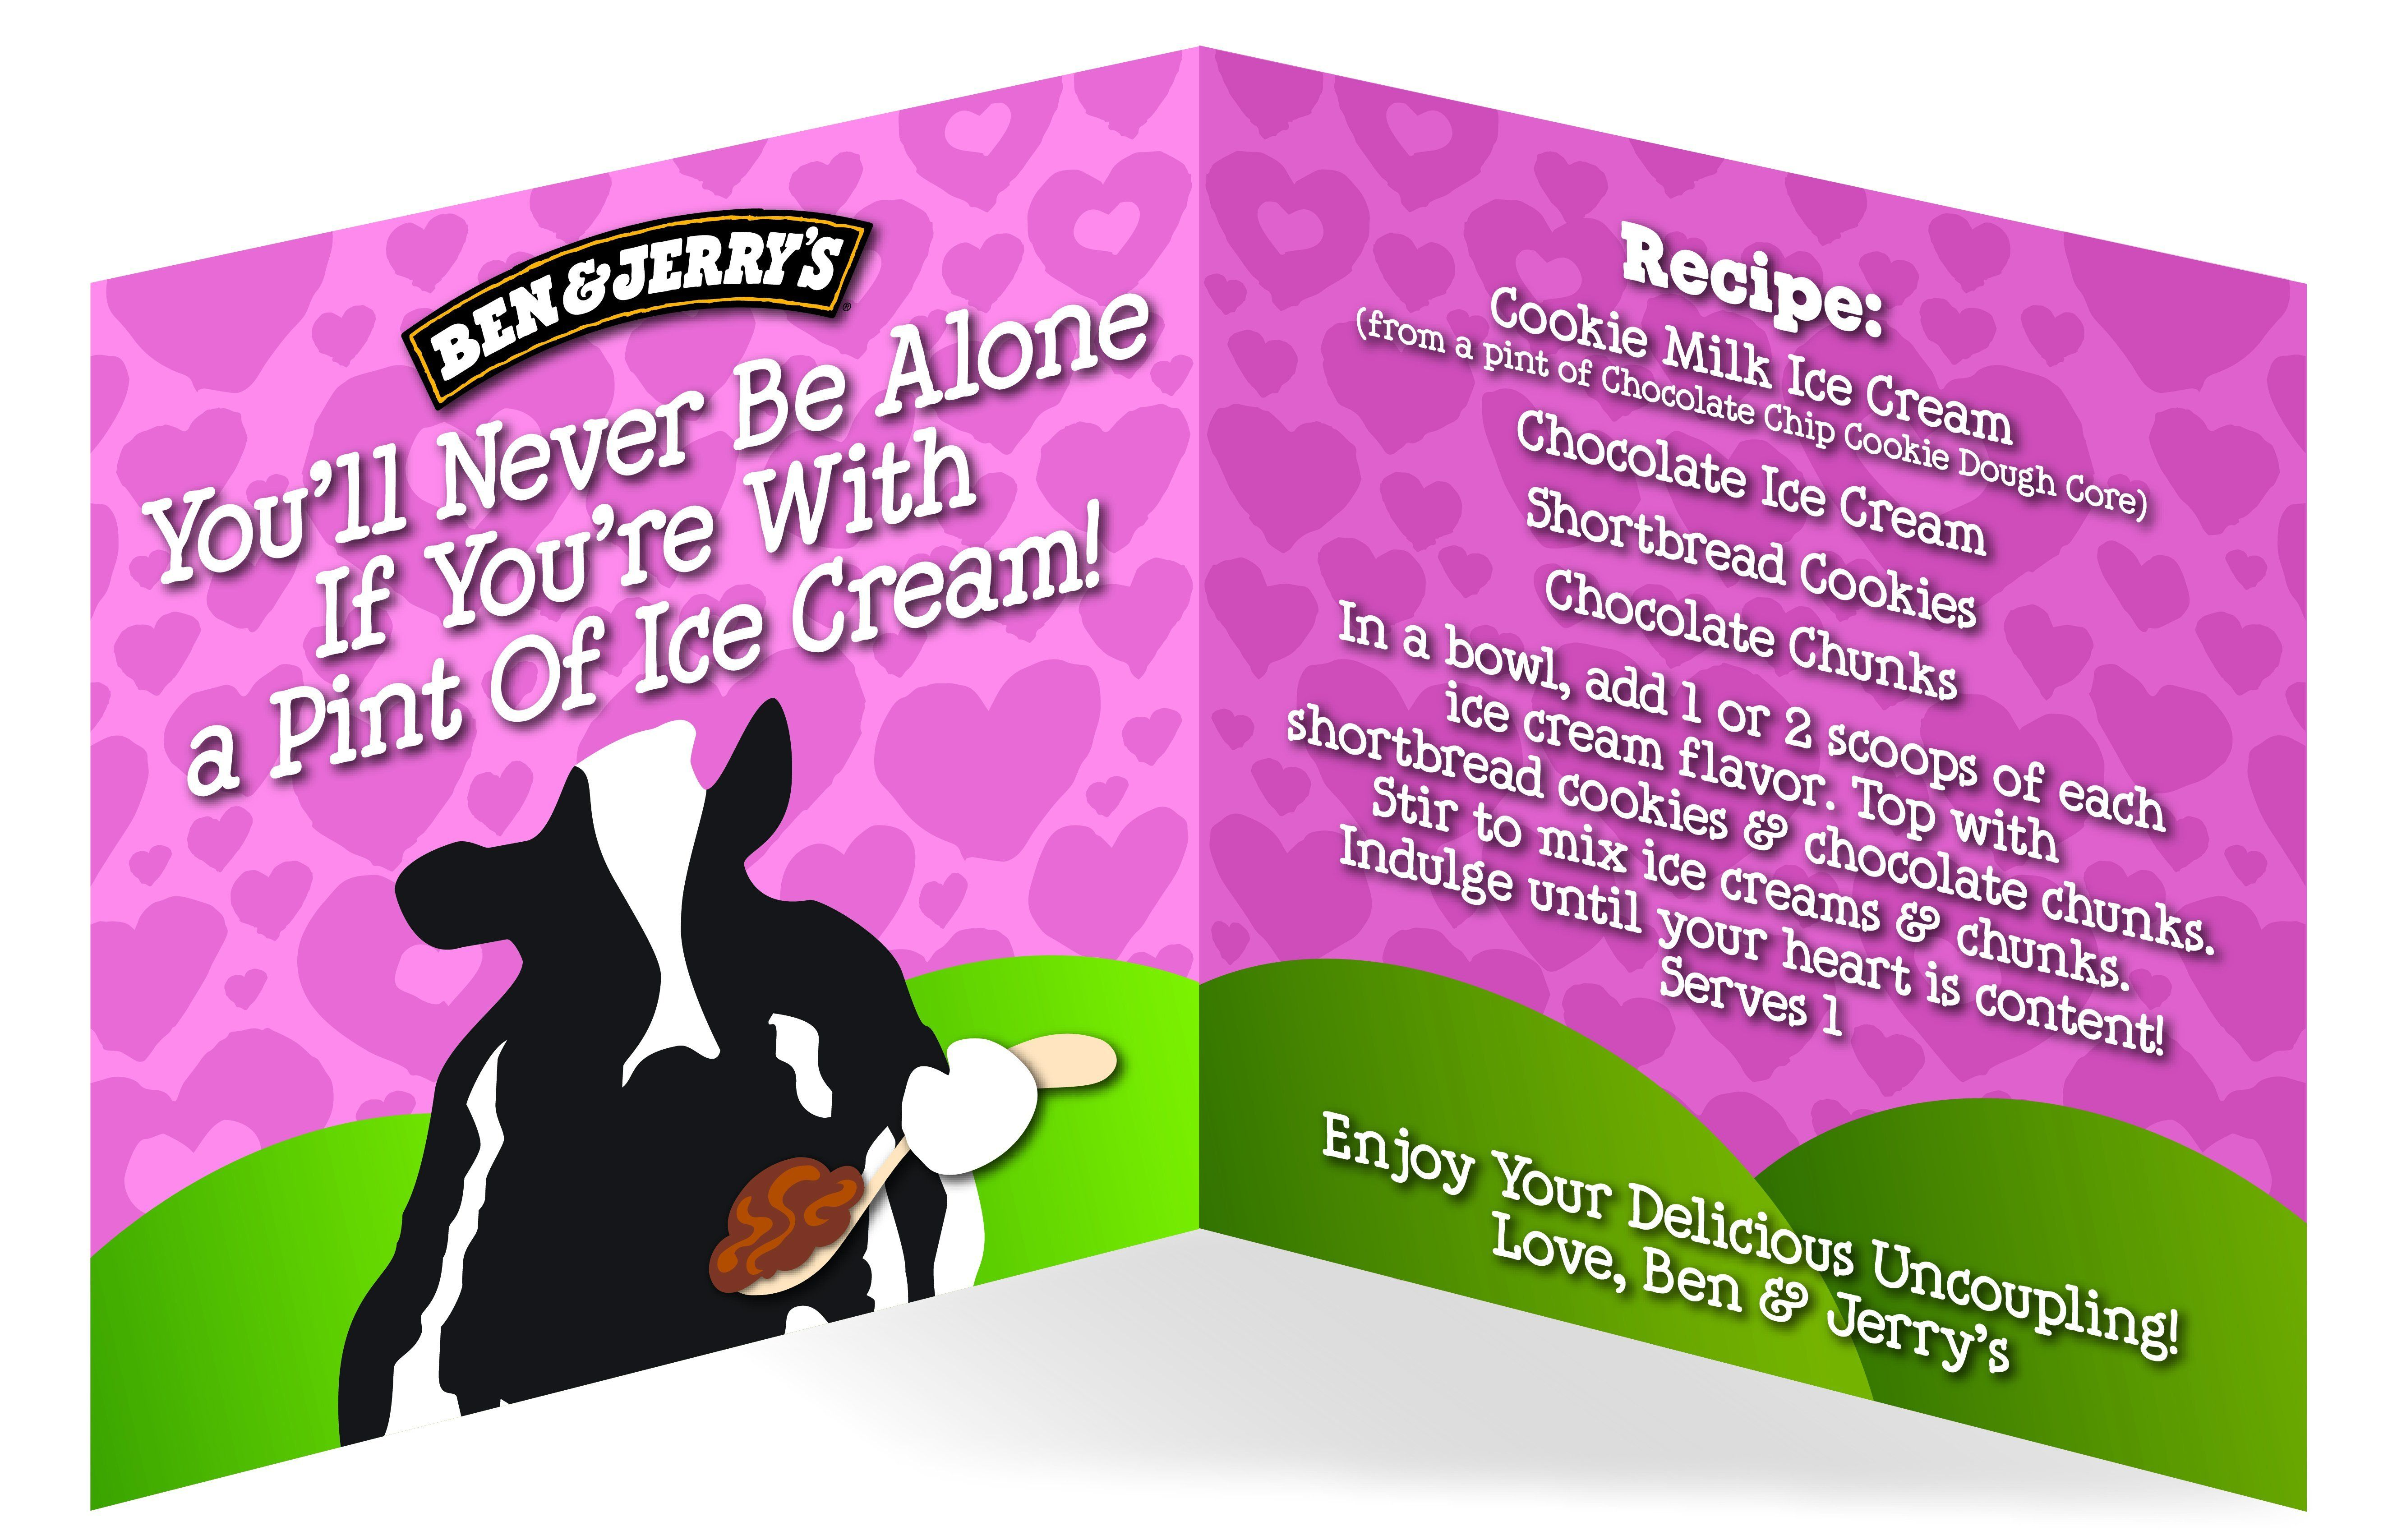 Ben & Jerry's Creates 'Delicious Uncoupling' Flavor For All The